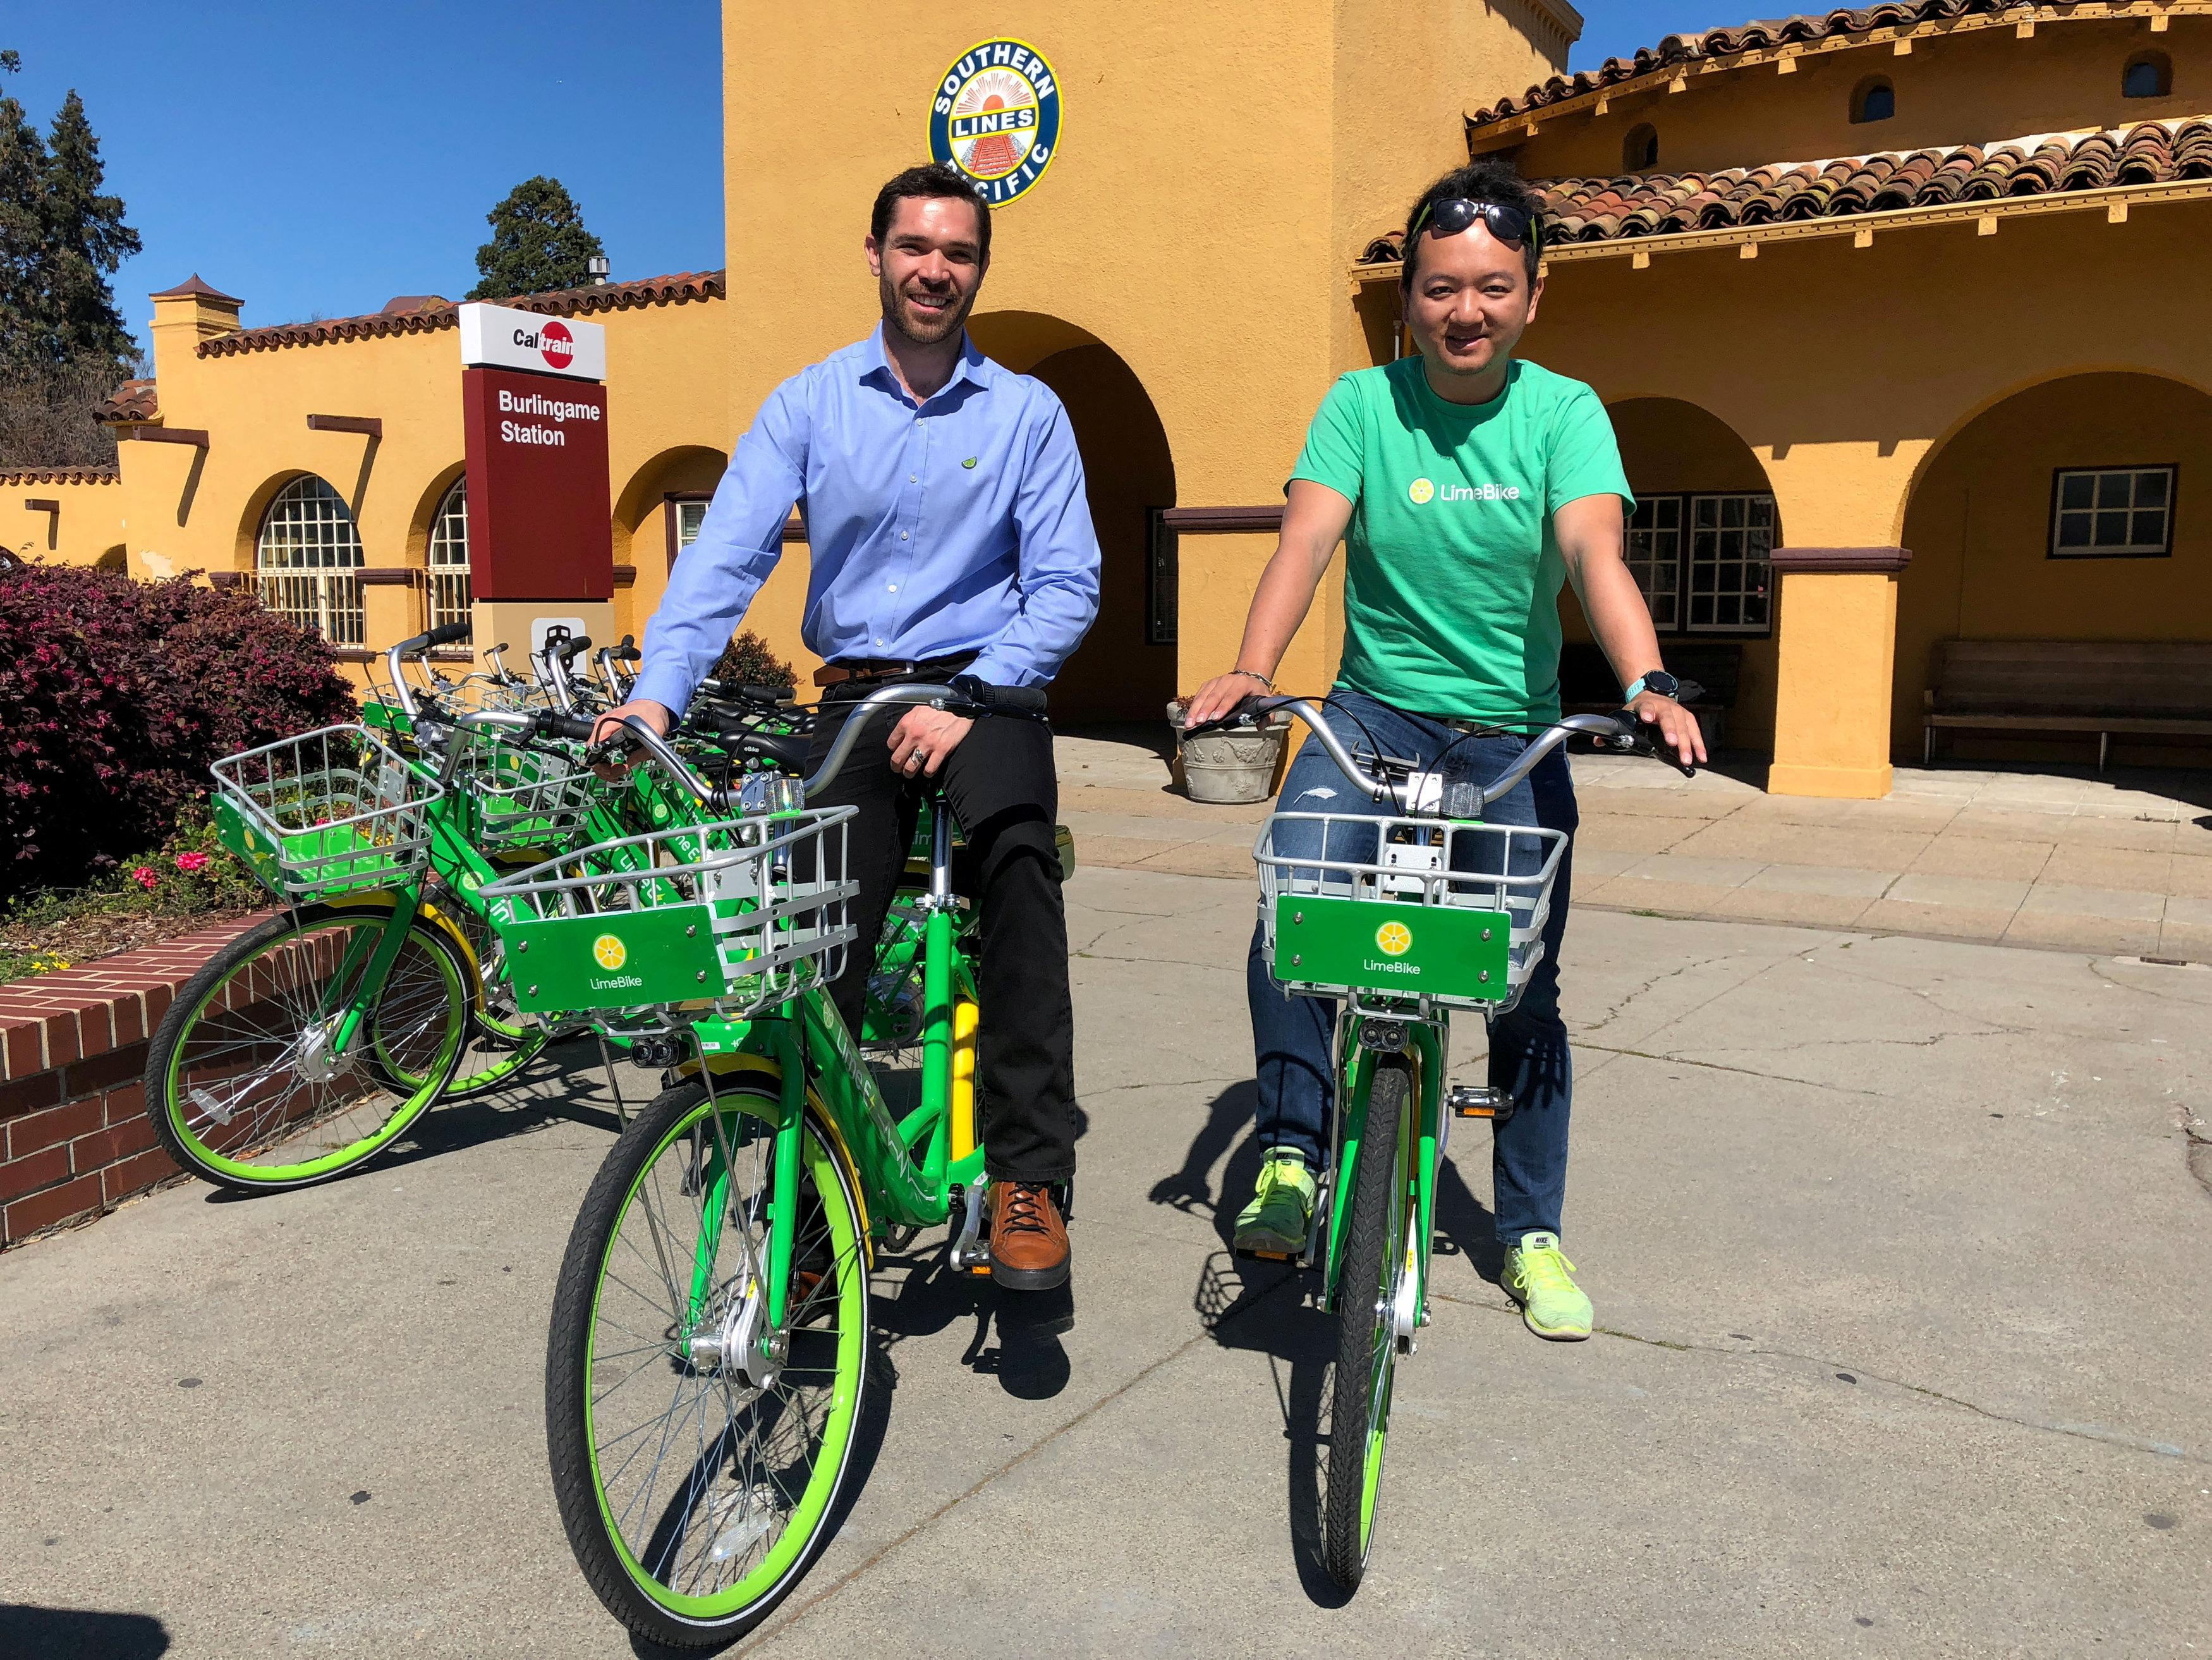 Co-founders Toby Sun (R) and Caen Contee of California-based bike sharing startup LimeBike show off their bikes at a recently-launched pilot program in Burlingame, California, U.S. March 8, 2017. Jane Lanhee Lee